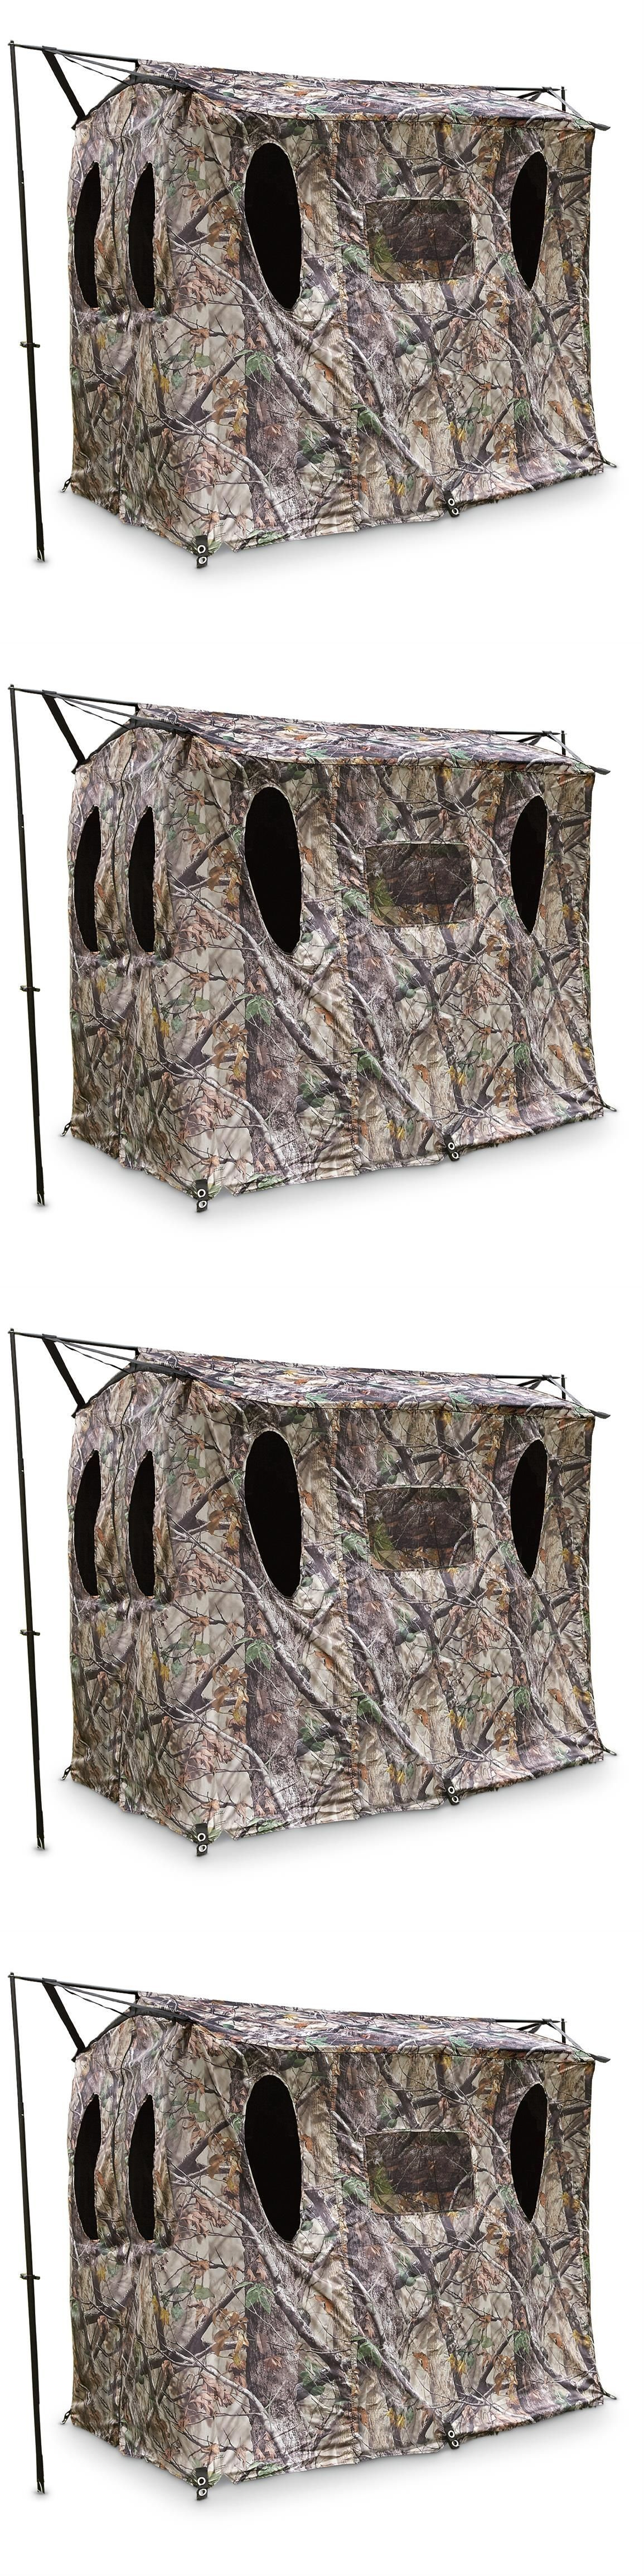 ground blinds amazon x dp canada large club blind the primos gray swat hunting